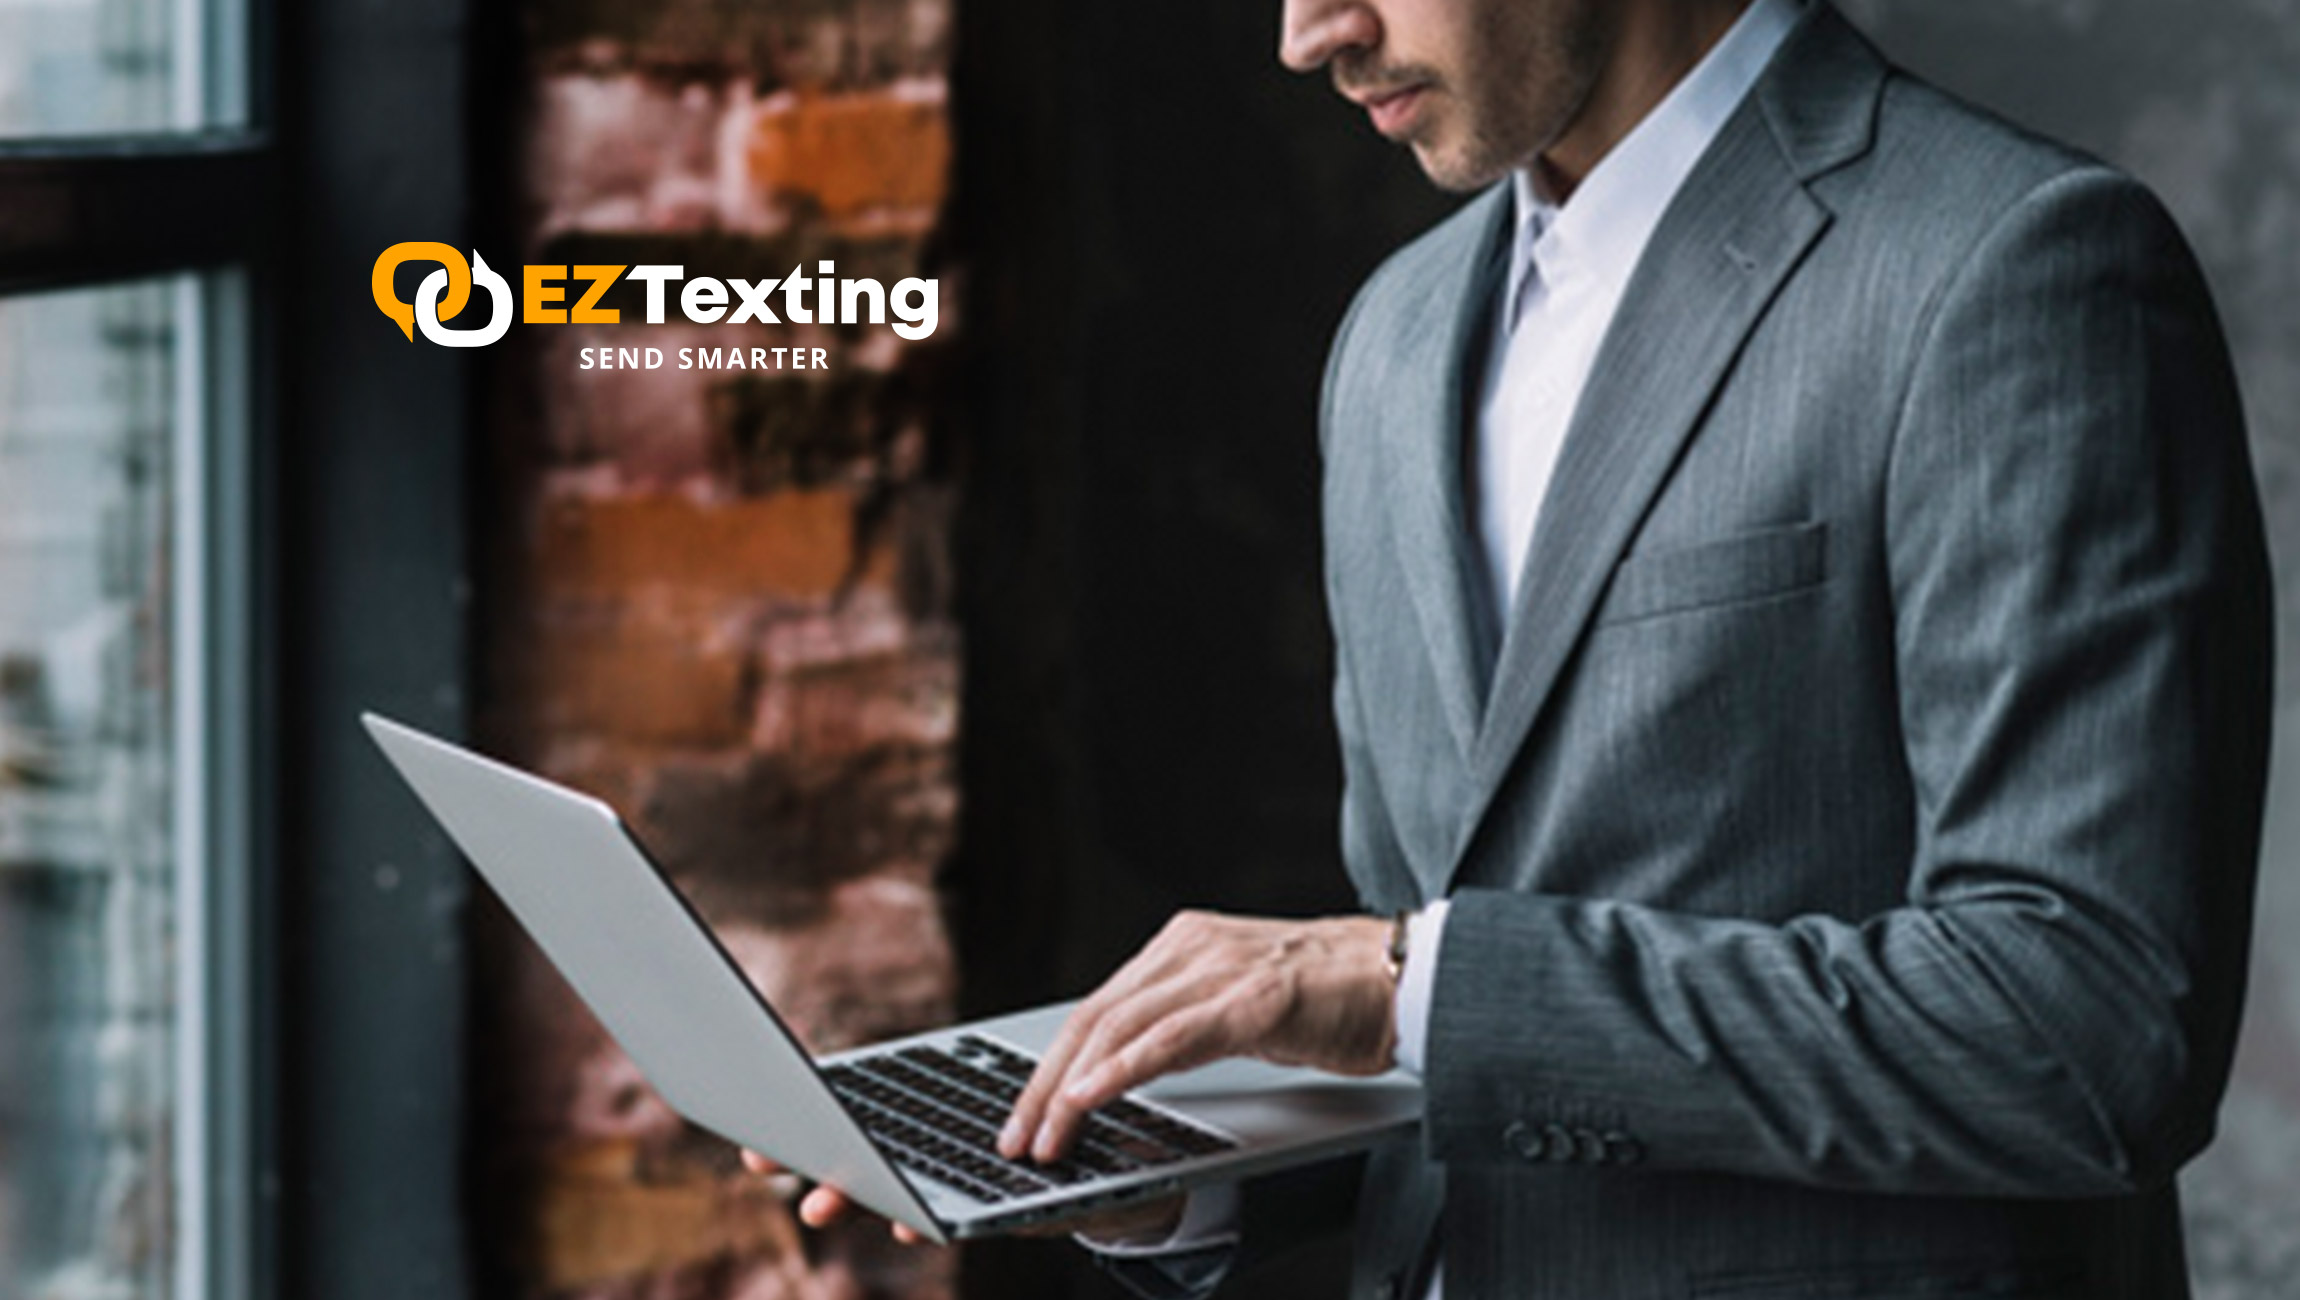 EZ Texting Becomes the First SMS Marketing SaaS Platform to Offer an Exclusive Agency Partner Program for Marketing and Ad Agencies.